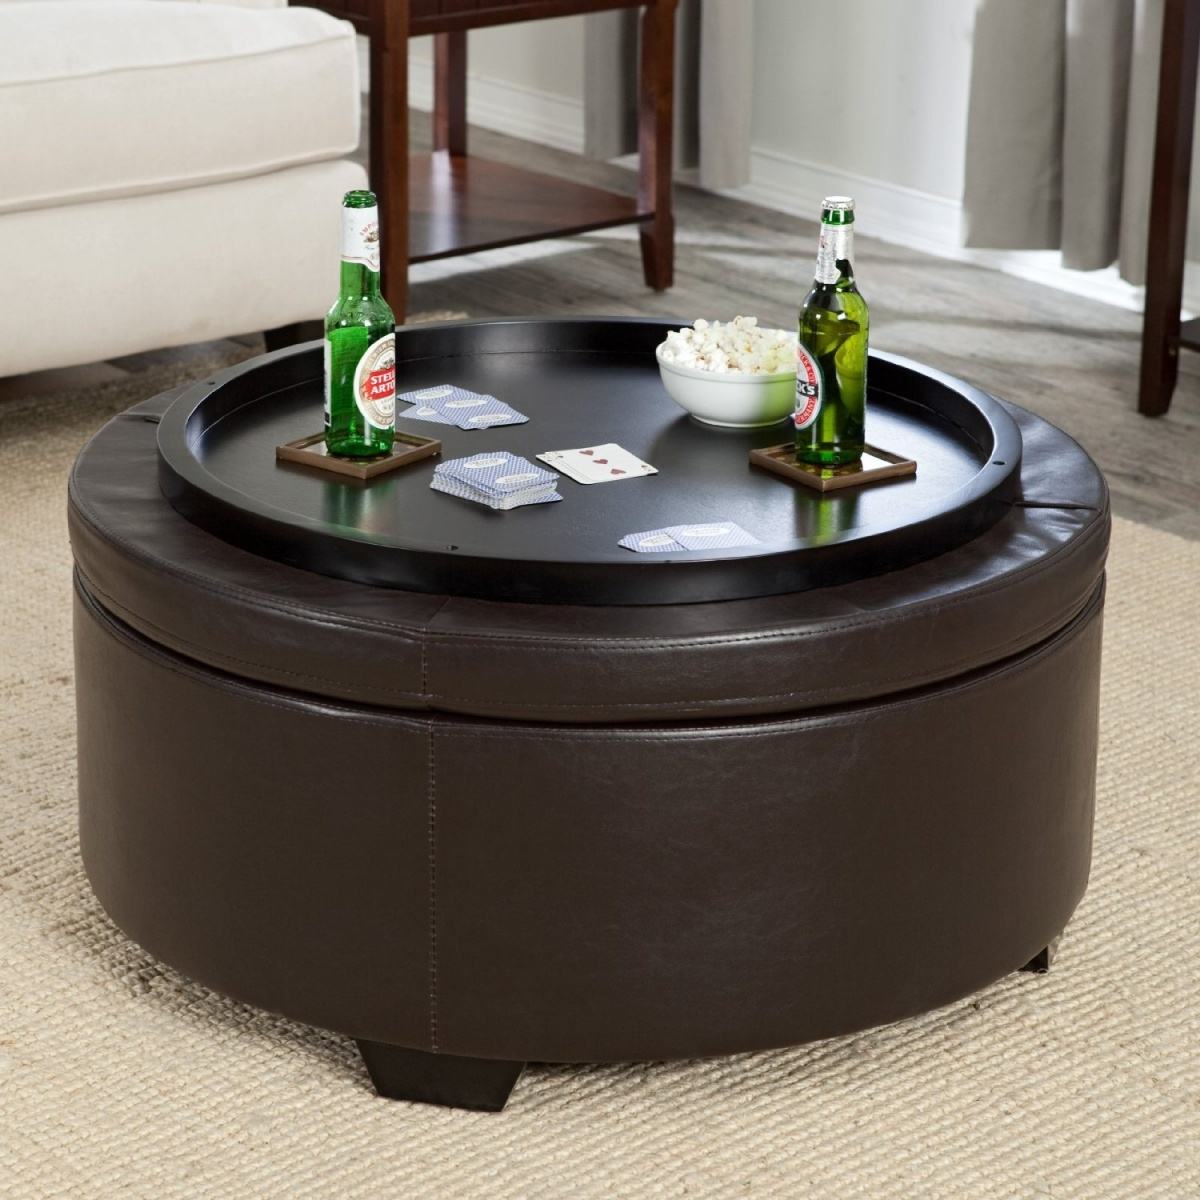 Round Coffee Table With Ottomans Round Coffee Table With Ottomans With Beers And Playing Card (View 8 of 8)